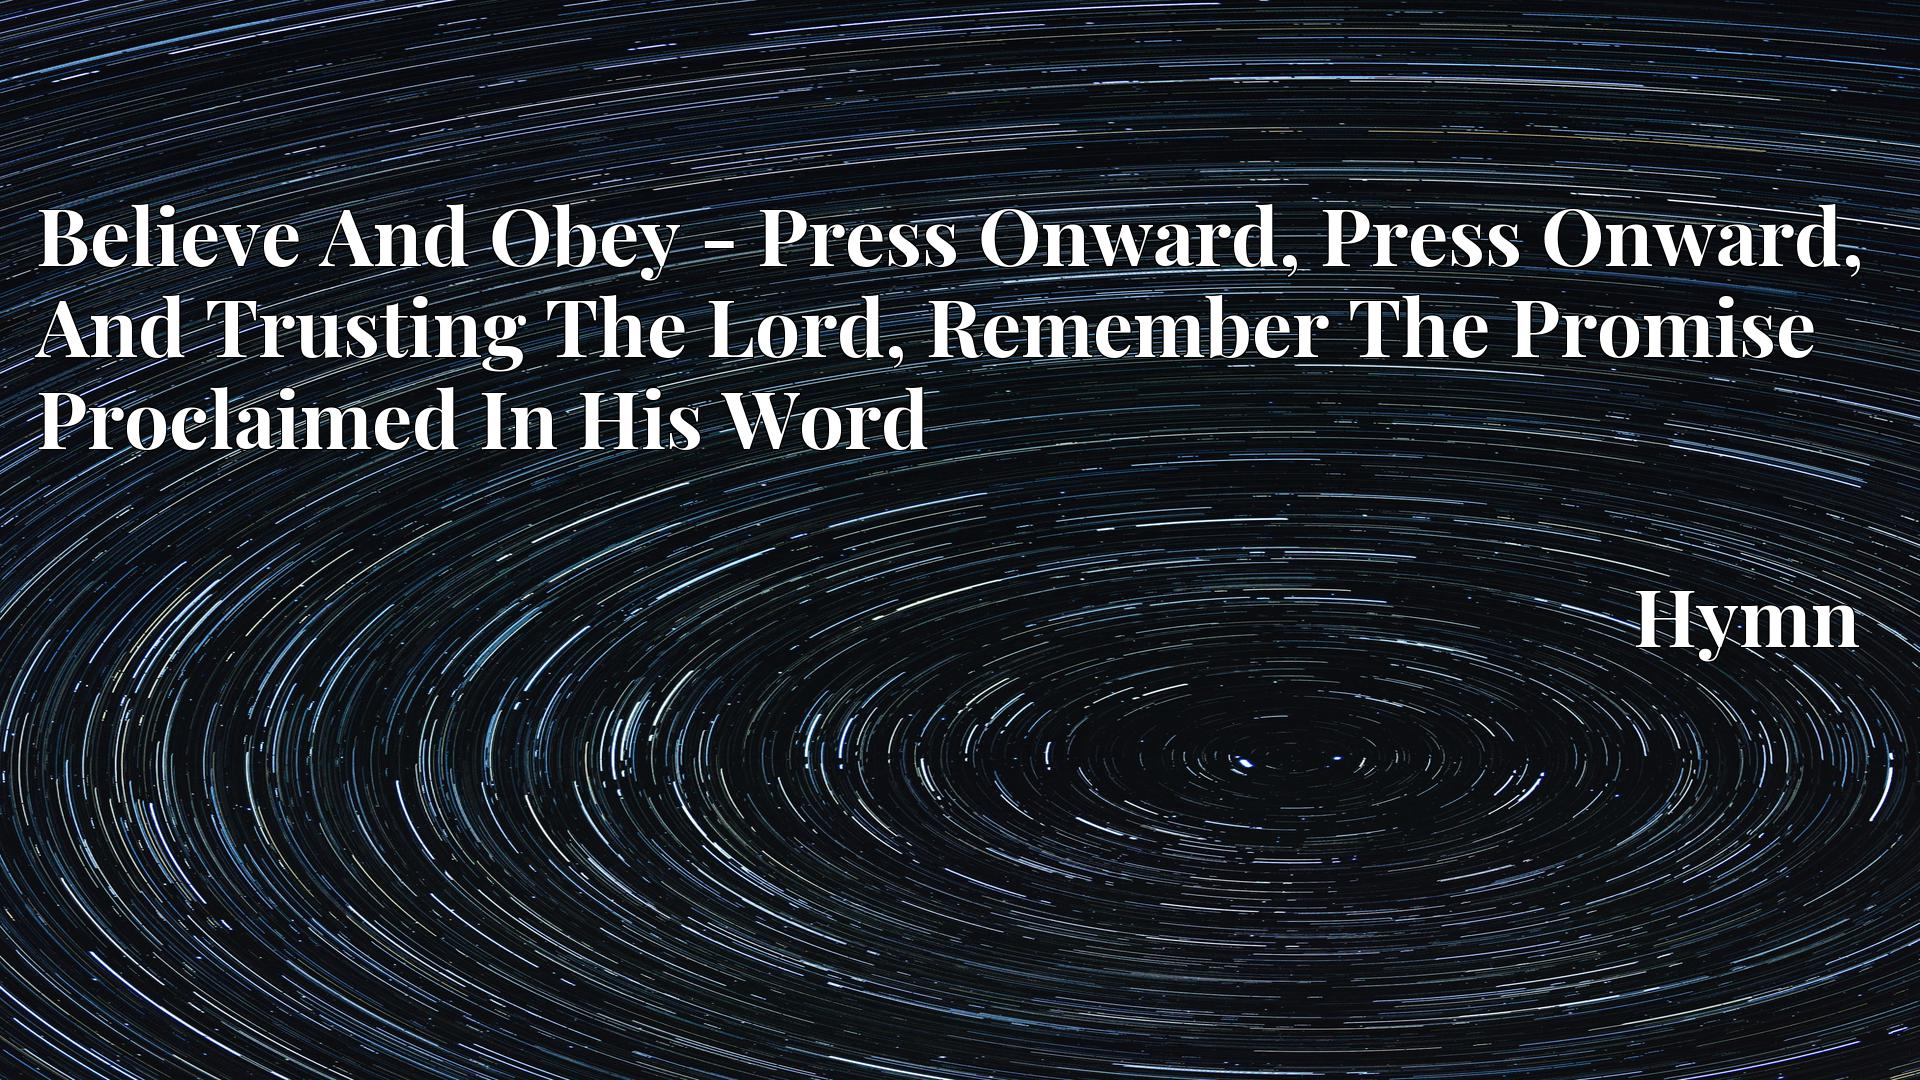 Believe And Obey - Press Onward, Press Onward, And Trusting The Lord, Remember The Promise Proclaimed In His Word - Hymn